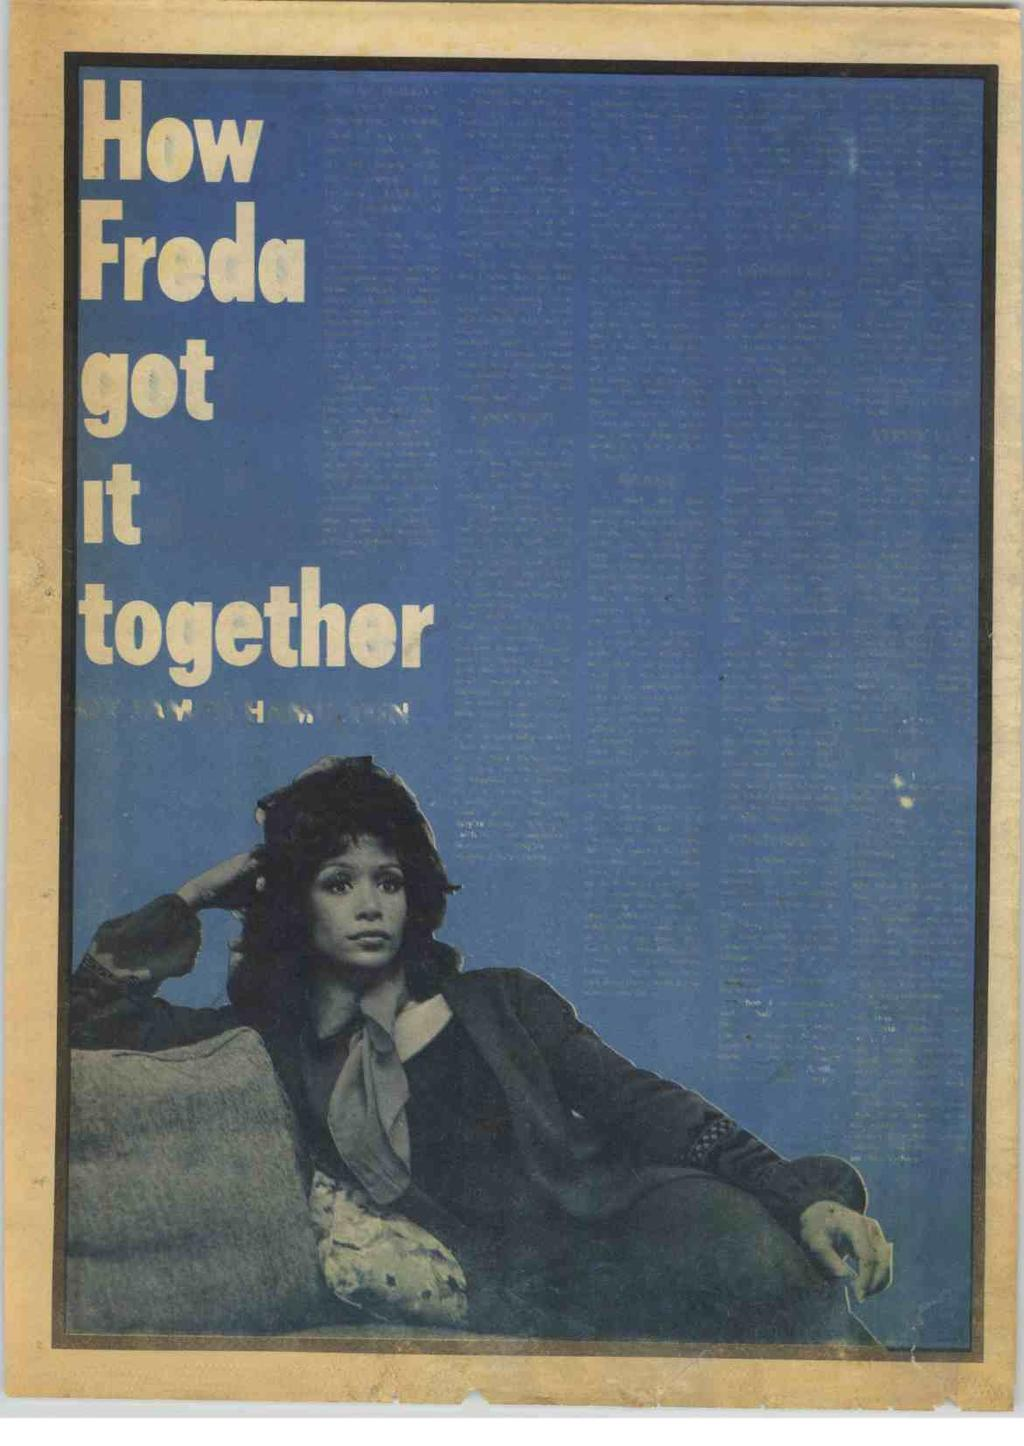 "24 RECORD MIRROR, May 15, 1971 How Freda got it togeth ""BRIAN Holland is a very nice, easy-going, lovable kind of a person - easy to talk to and to get along with. Nice people."